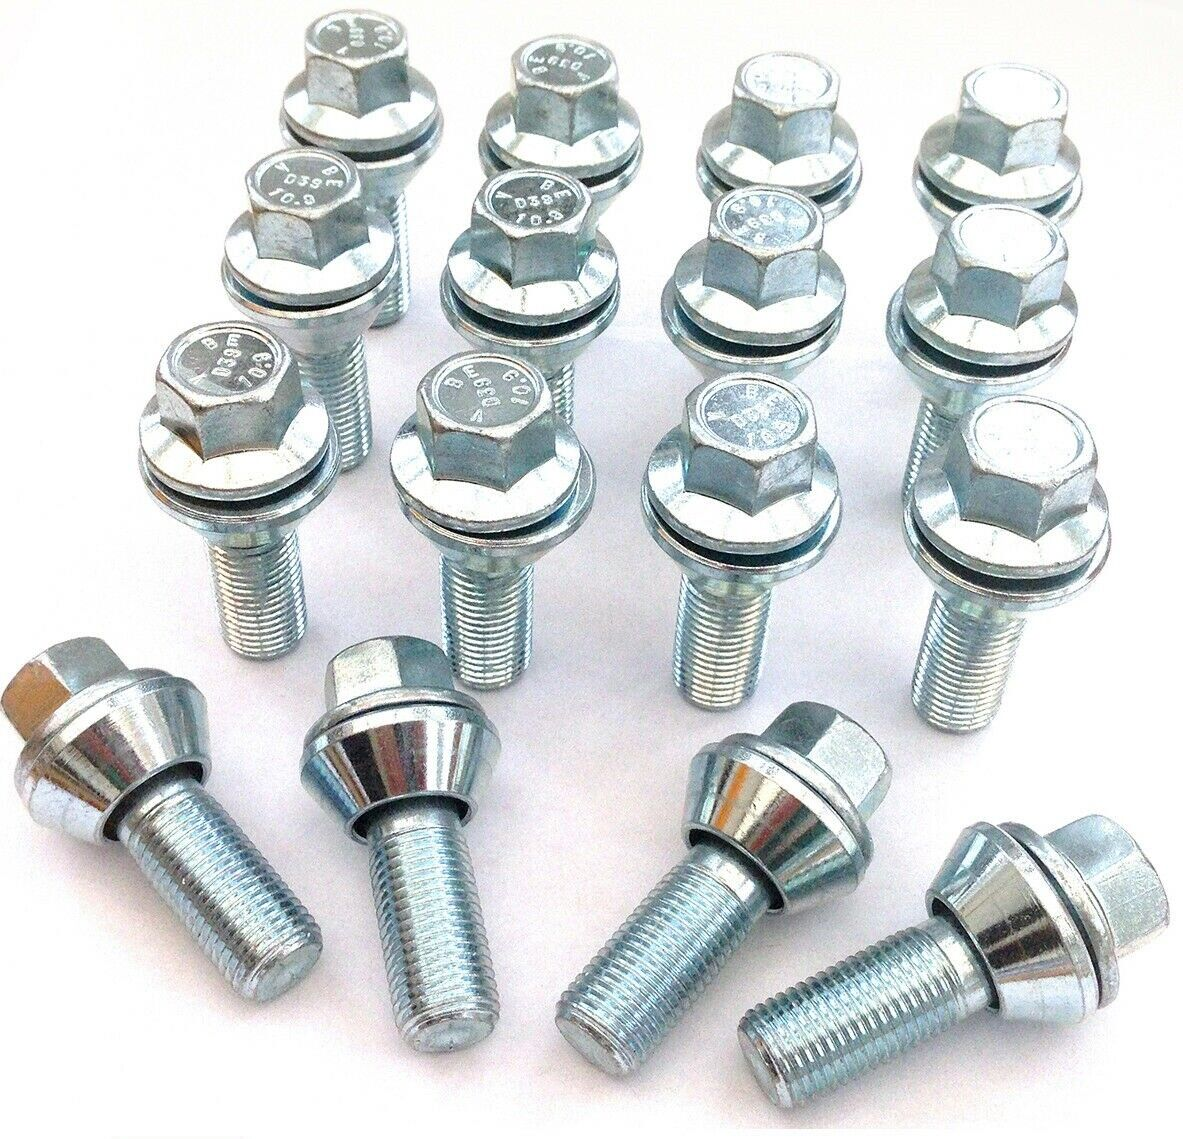 ALLOY WHEEL BOLTS FIT RENAULT TRAFFIC M14X1.5 WOBBLE WOBBLY VARIABLE BOLTS